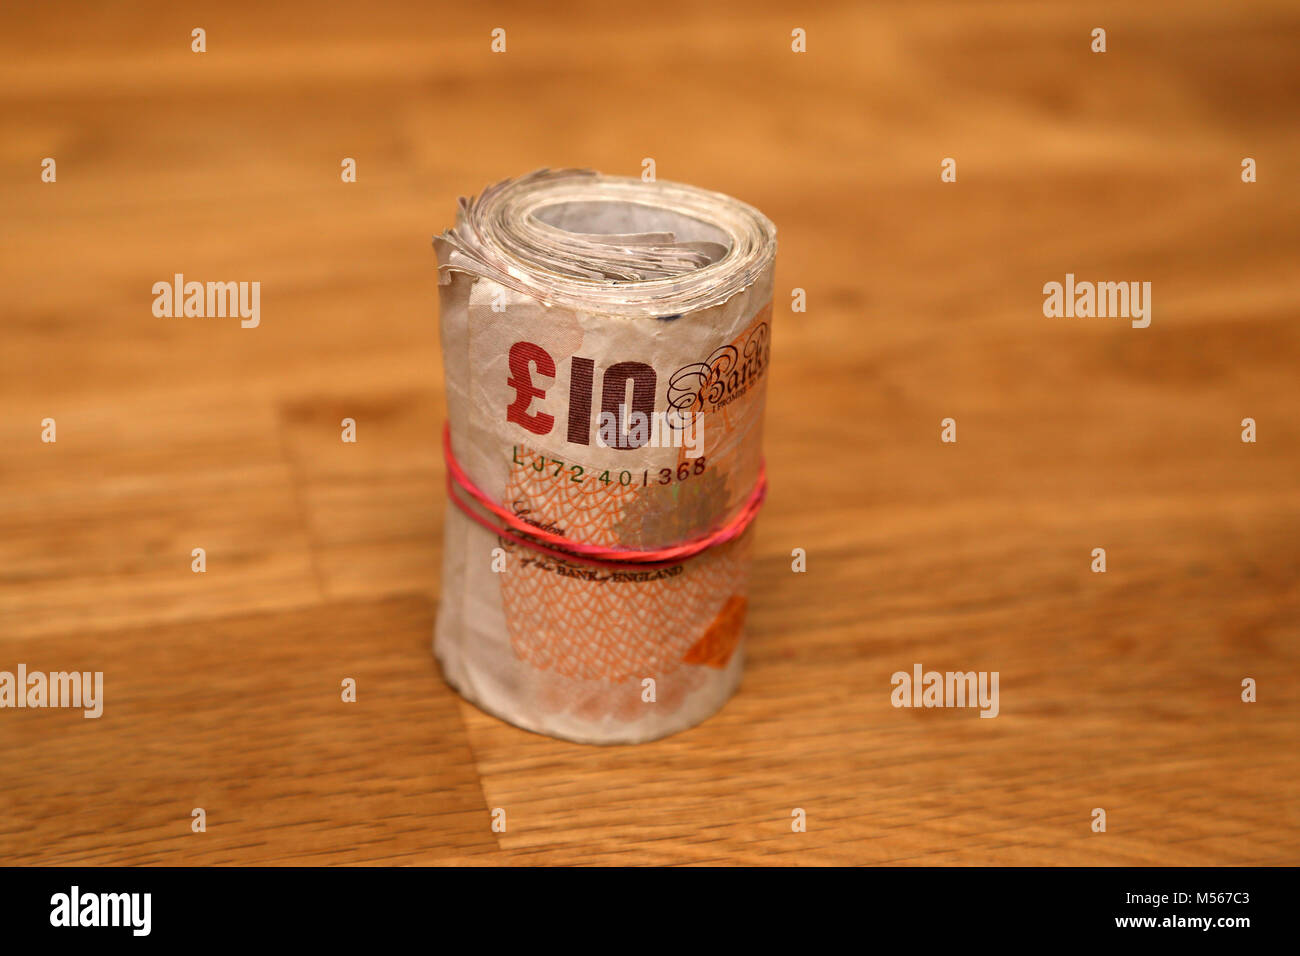 Bank of England notes including the old paper £10 note, paper £20 note, plastic £10 note and plastic - Stock Image